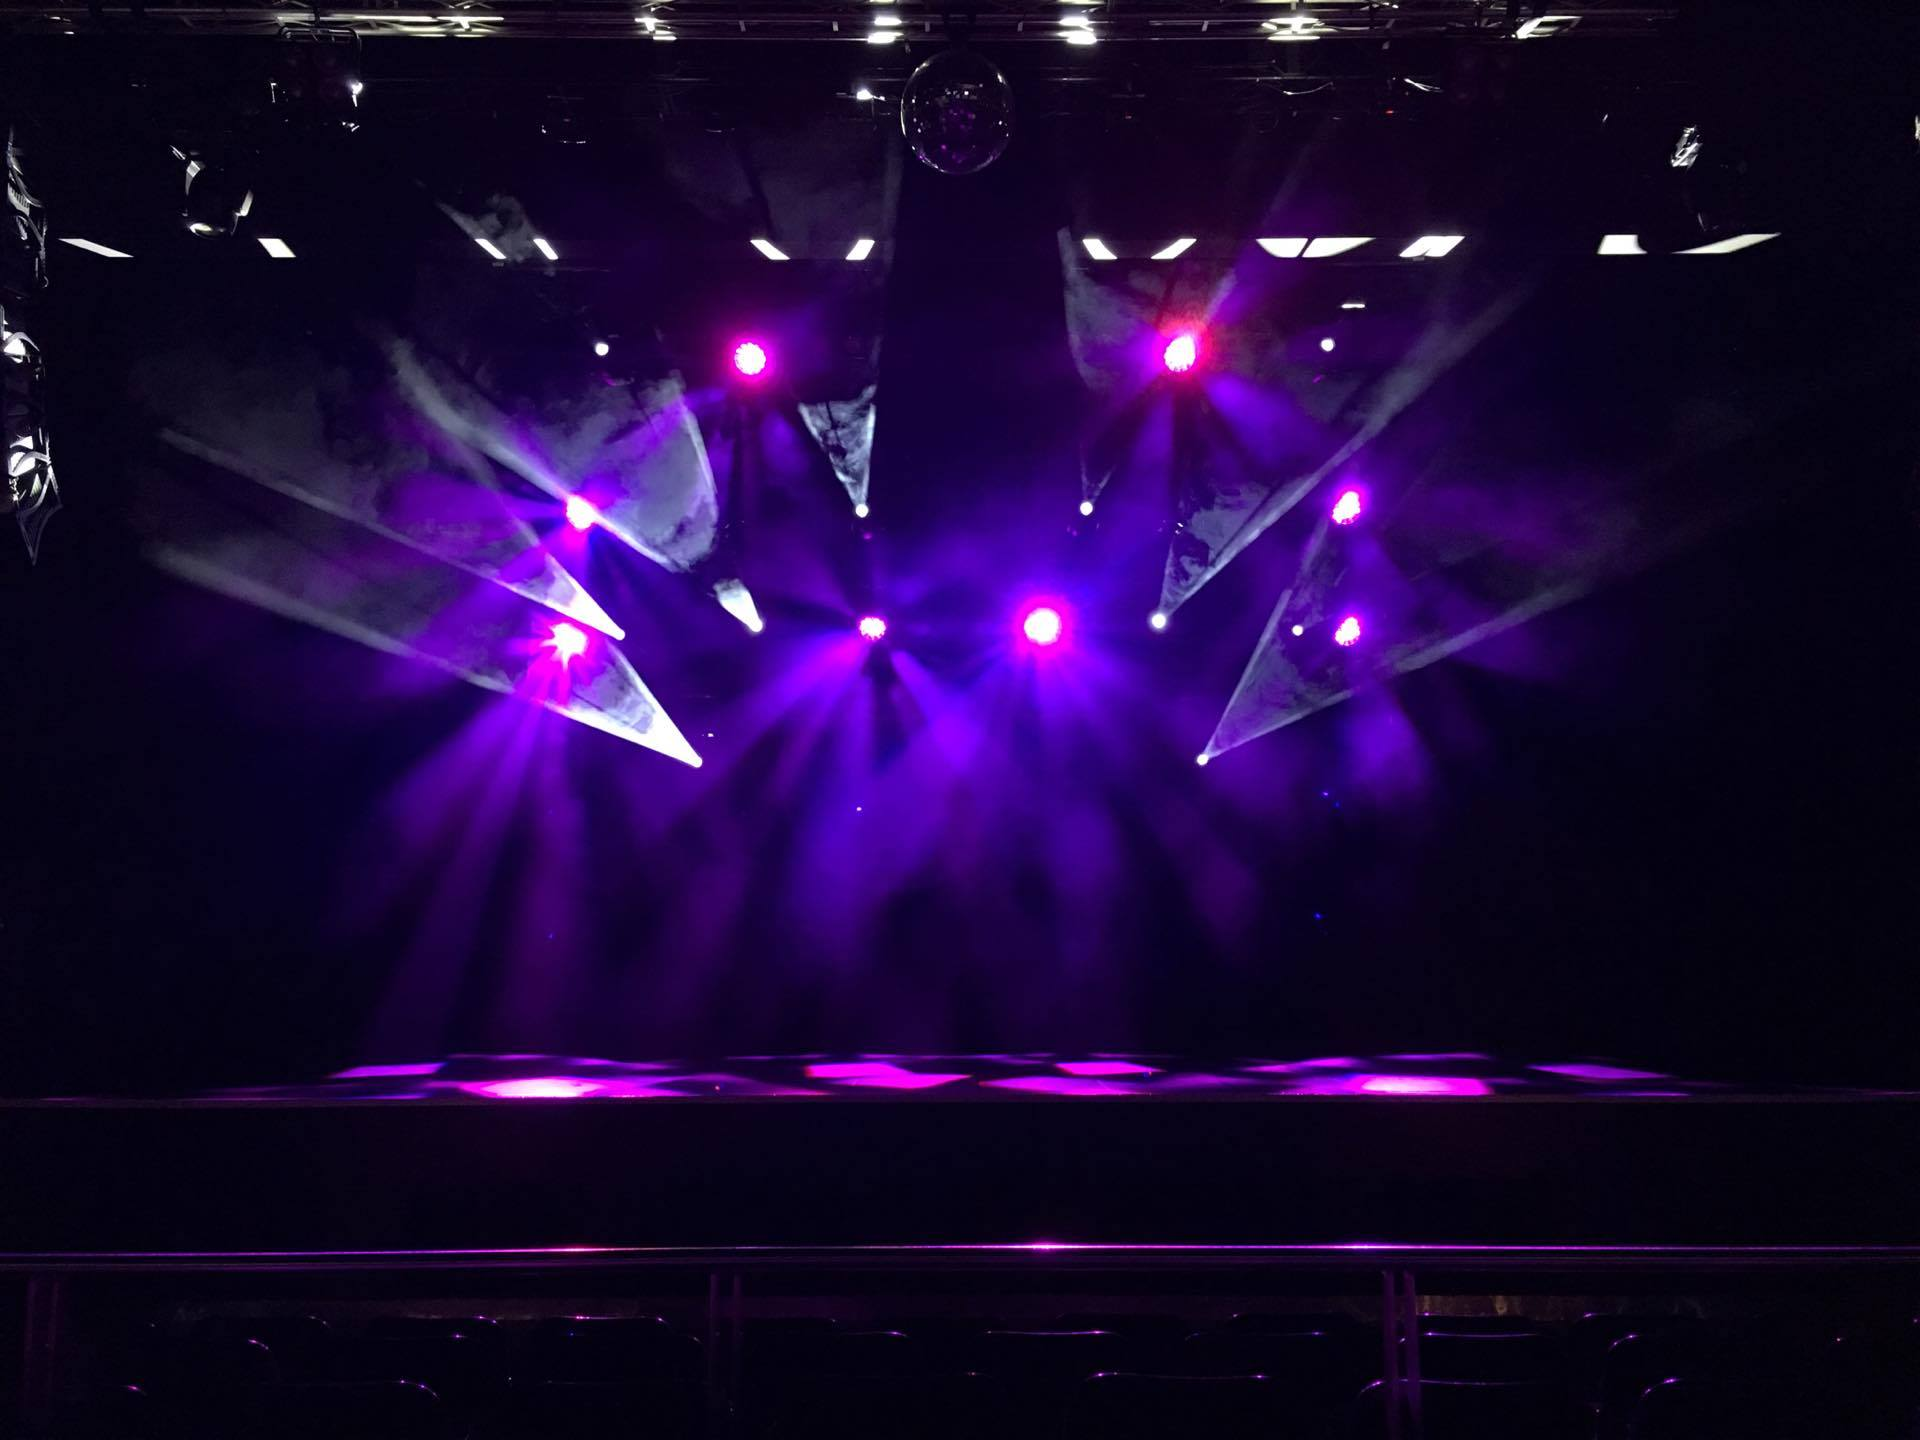 panthers penrith upgrade evan theatre with show technology. Black Bedroom Furniture Sets. Home Design Ideas